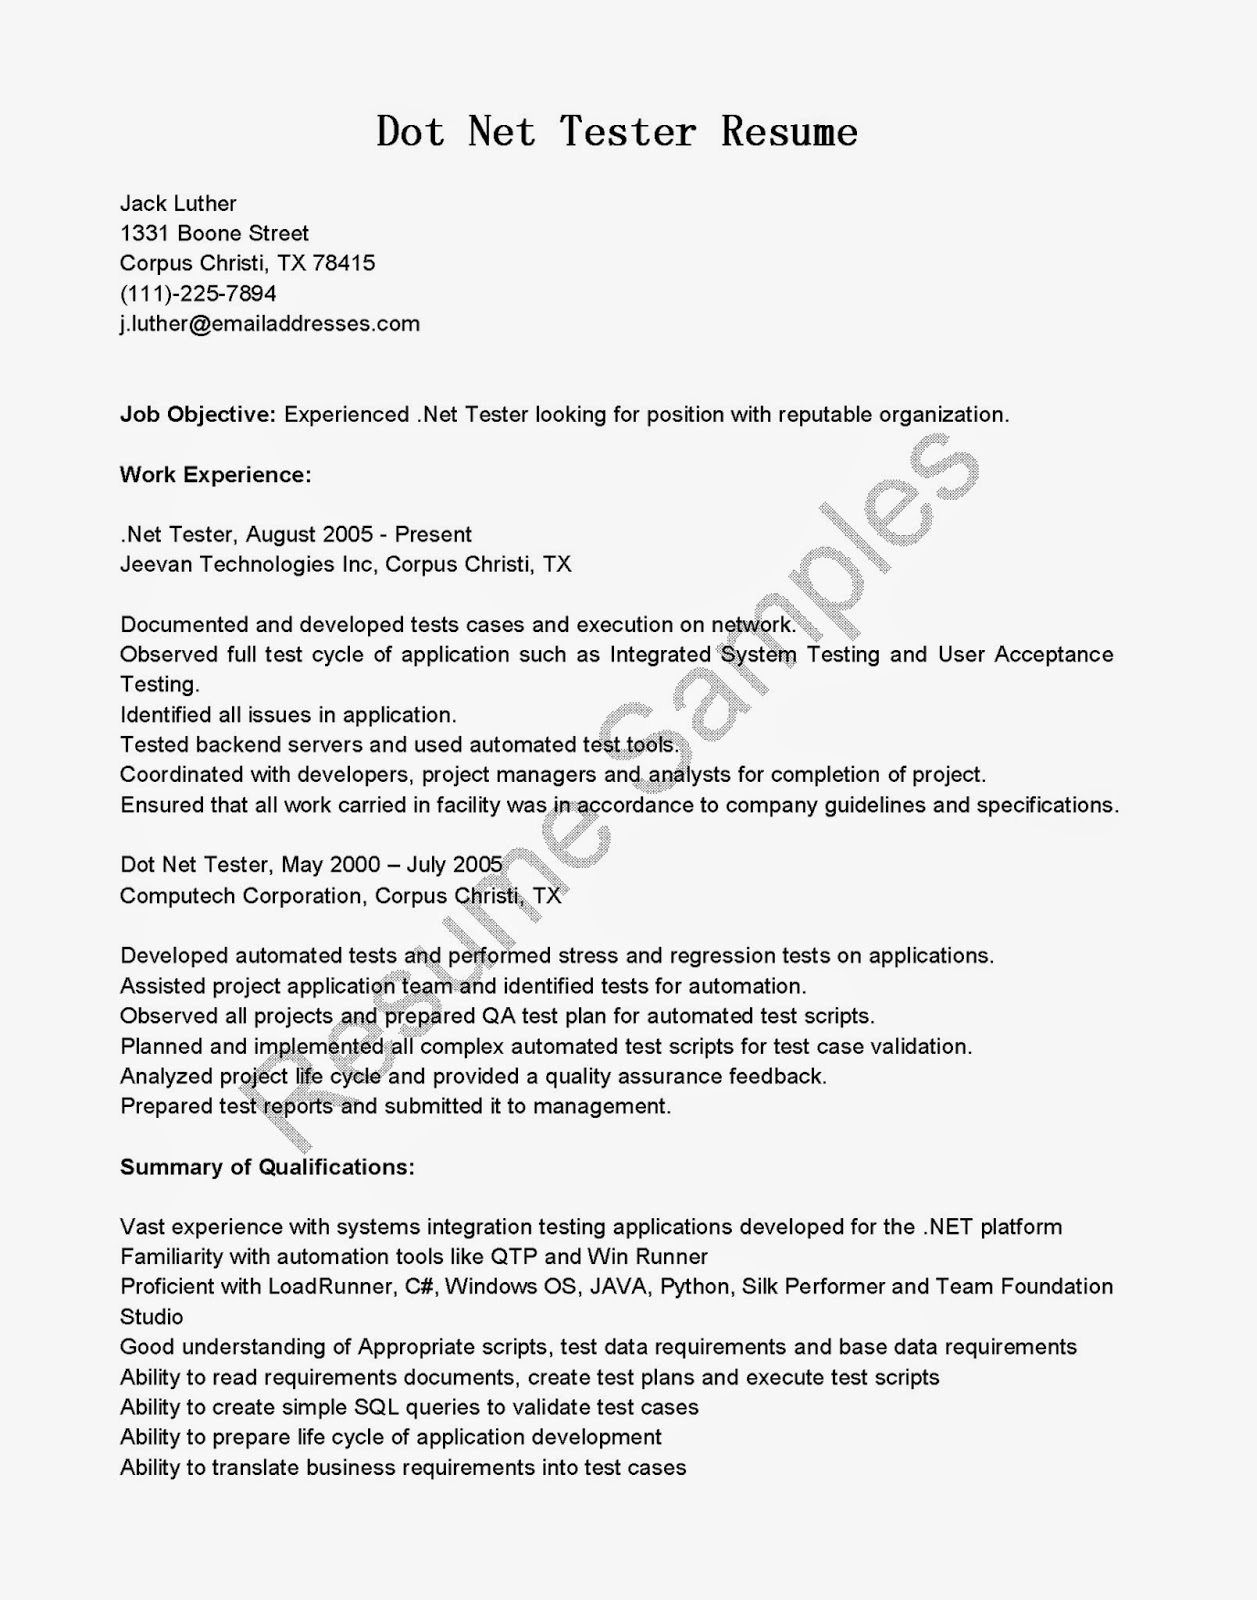 Quality Assurance Analyst Cover Letter Help Writing Term Paper Buy Essay Online From The Best Writing